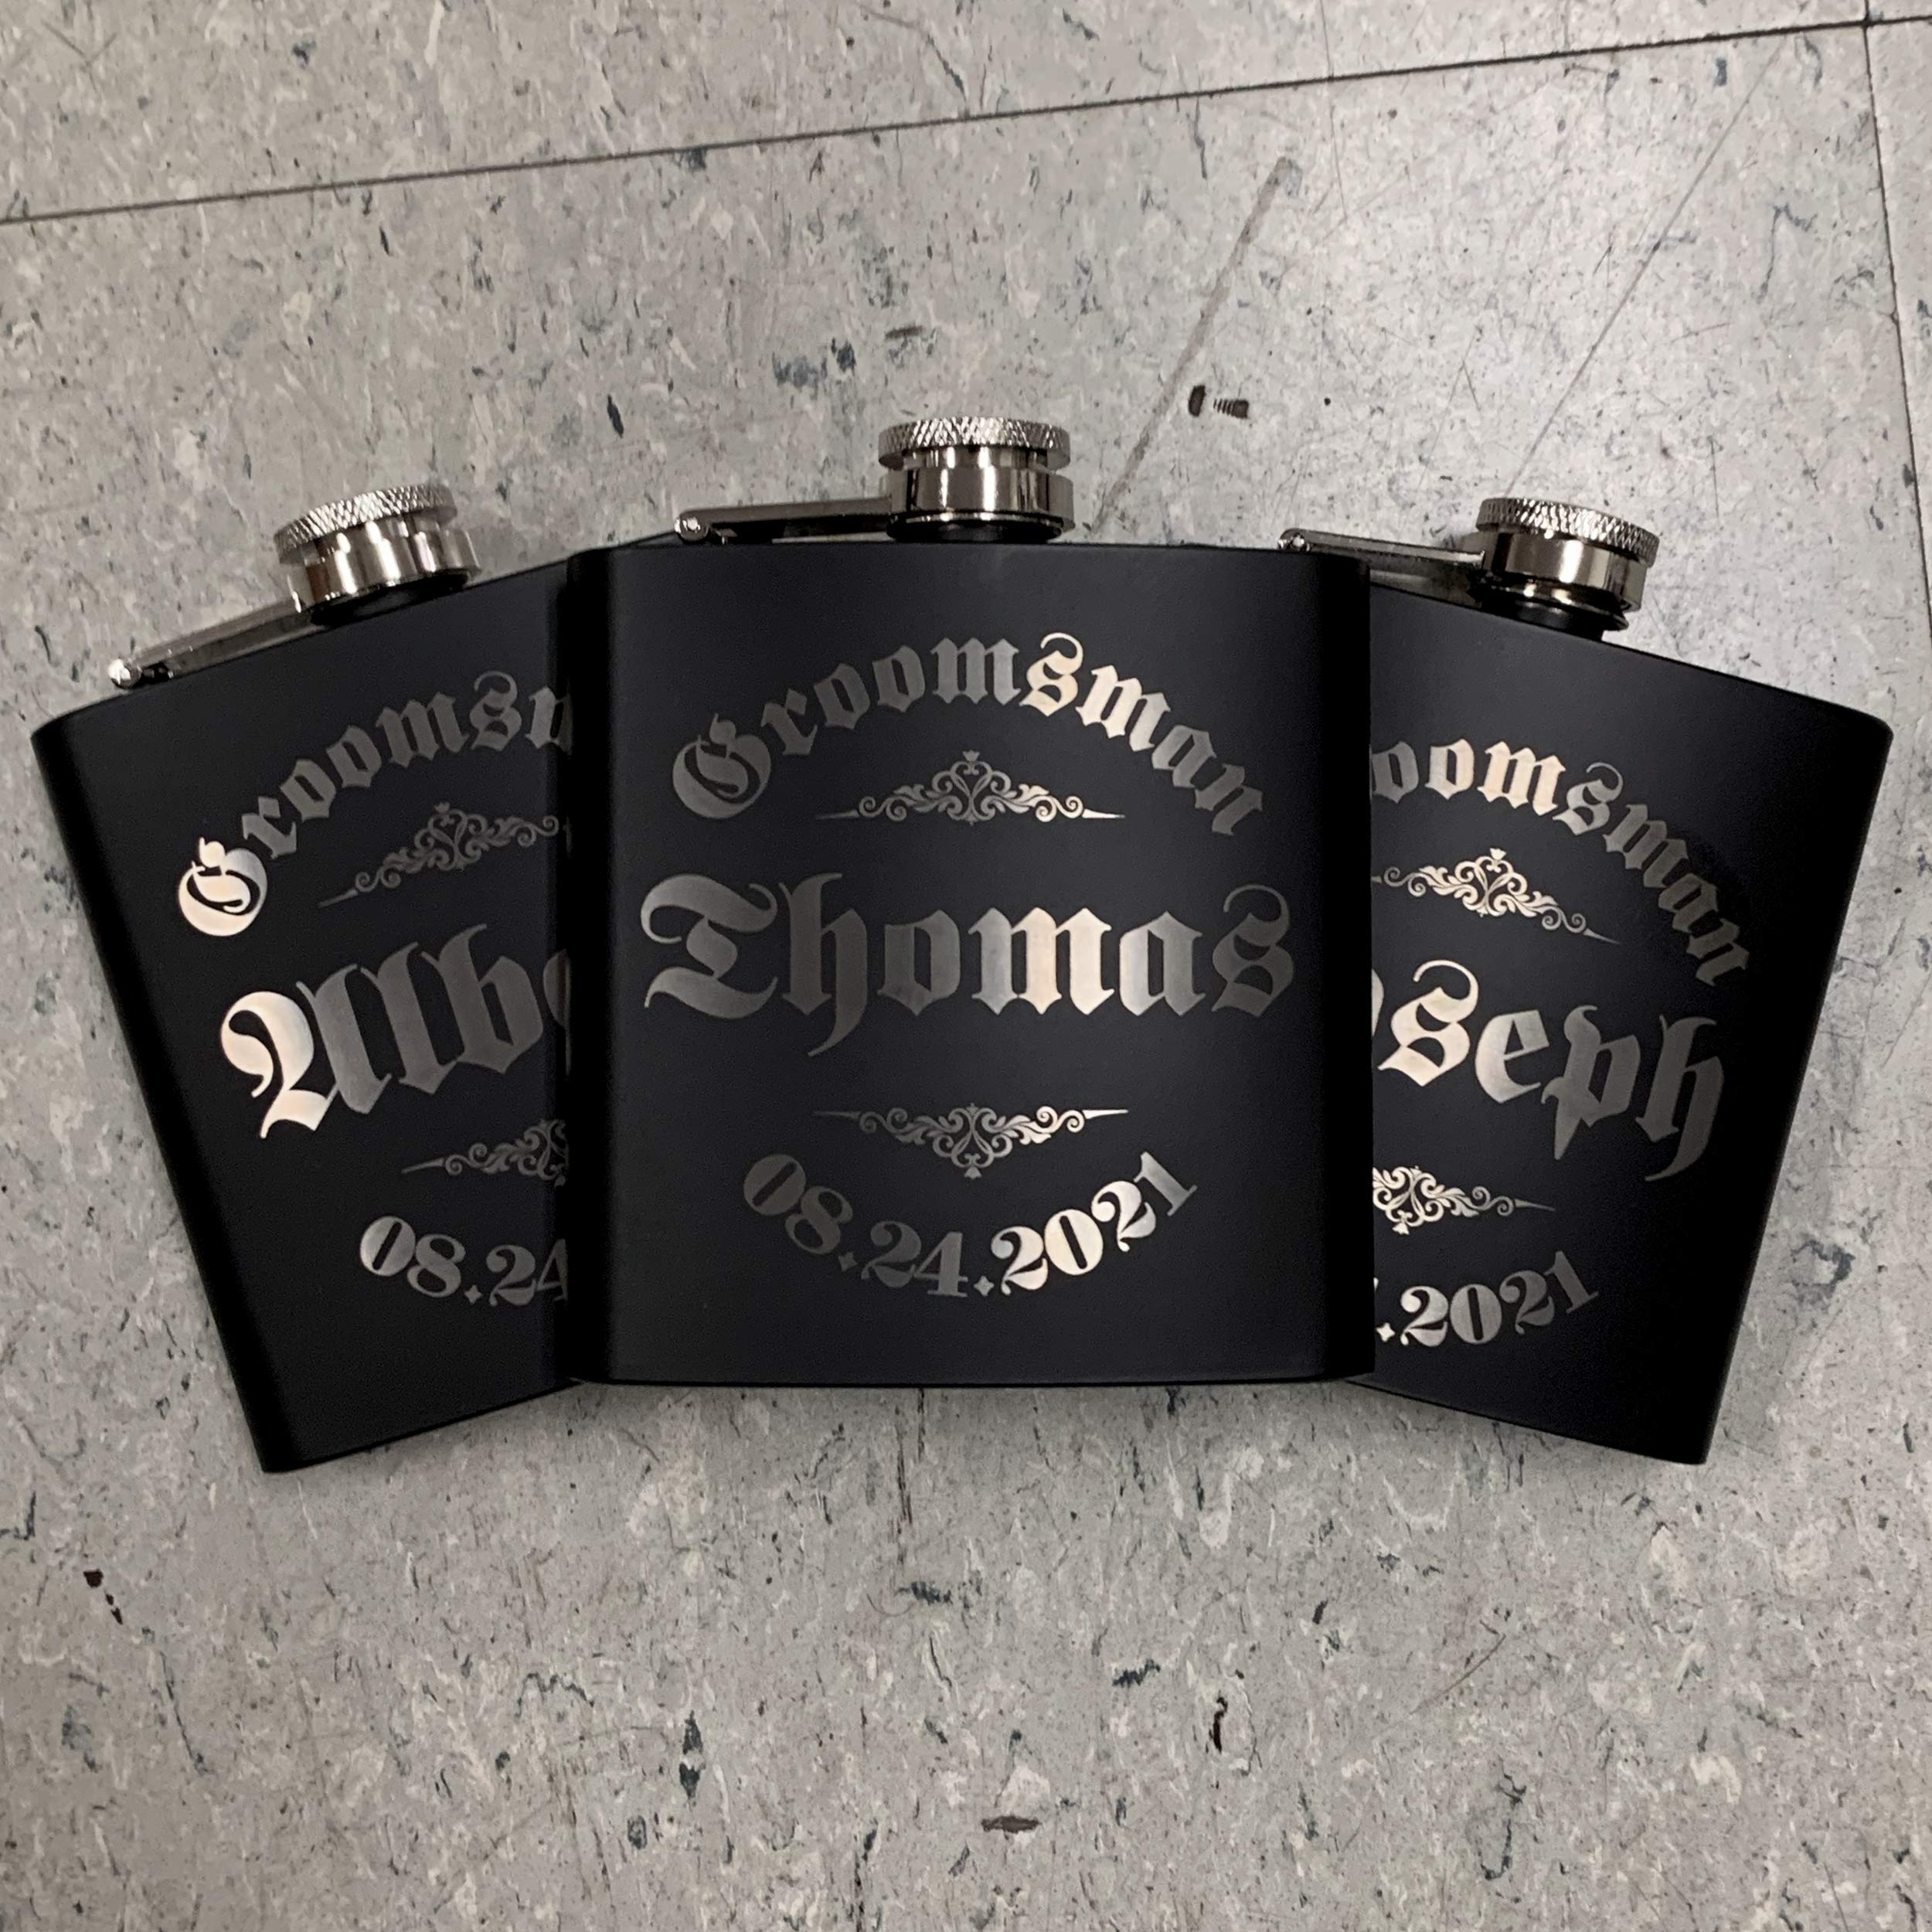 Personalizedgiftland Personalized Flask, Set Of 6 - Customized Flask Groomsmen Gifts For Wedding Favors, Personalized Groomsman gift - Stainless Steel Engraves Flasks w Gift Box Options - 6oz, Black by PersonalizedGiftLand (Image #10)